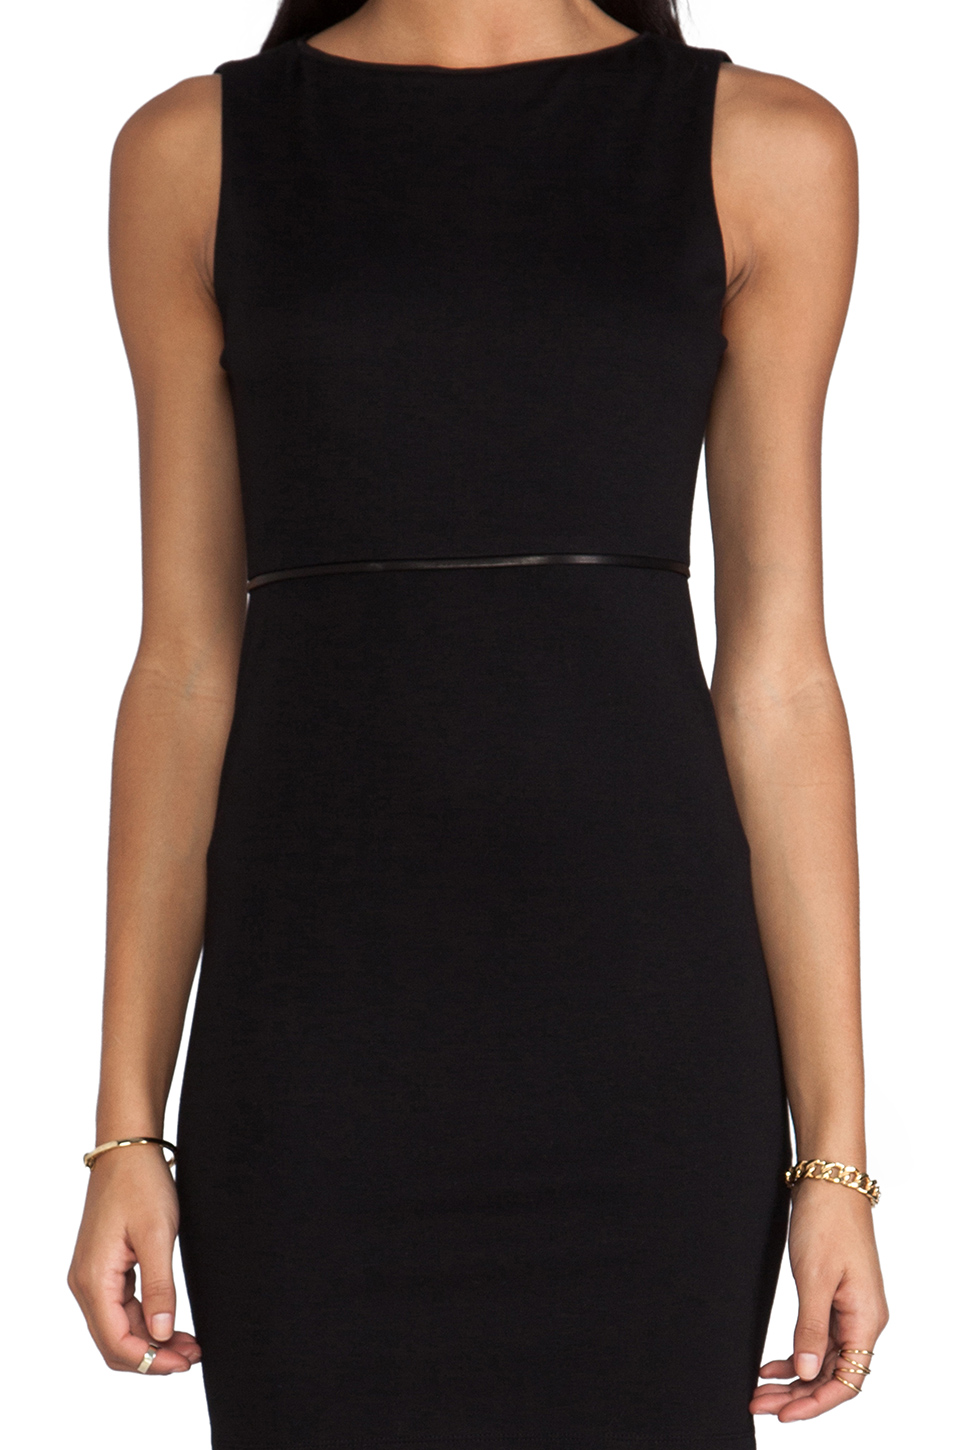 Alice + Olivia Darcey Sleeveless Leather Piped Dress in Black/Black